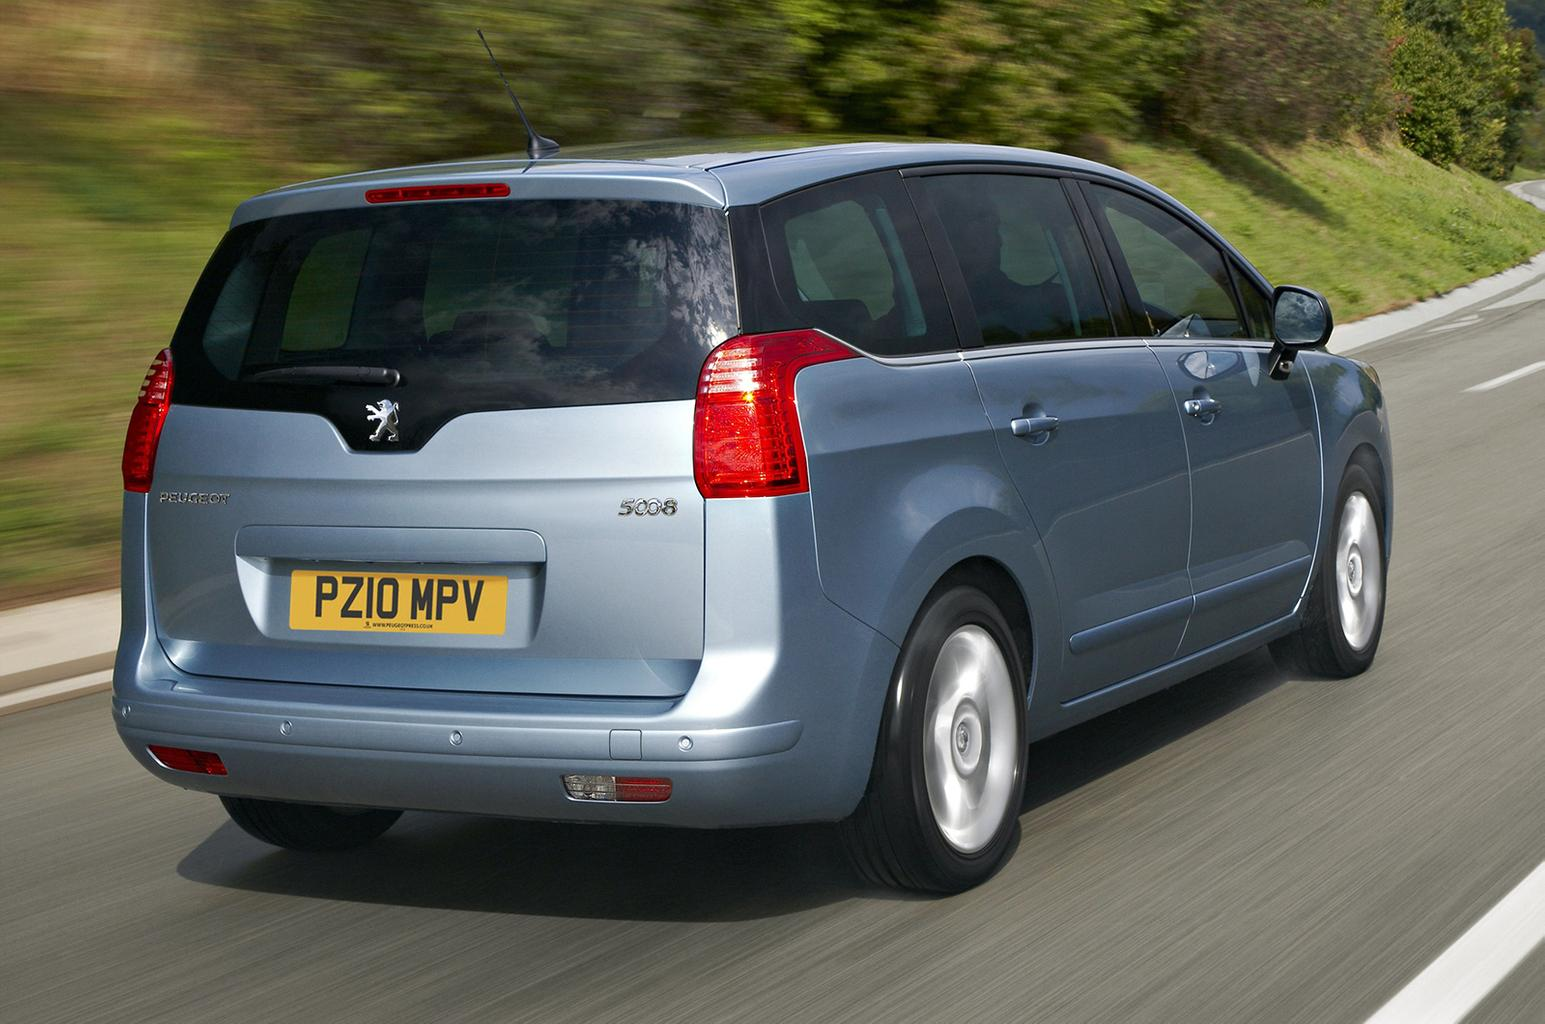 Used car of the week: Peugeot 5008